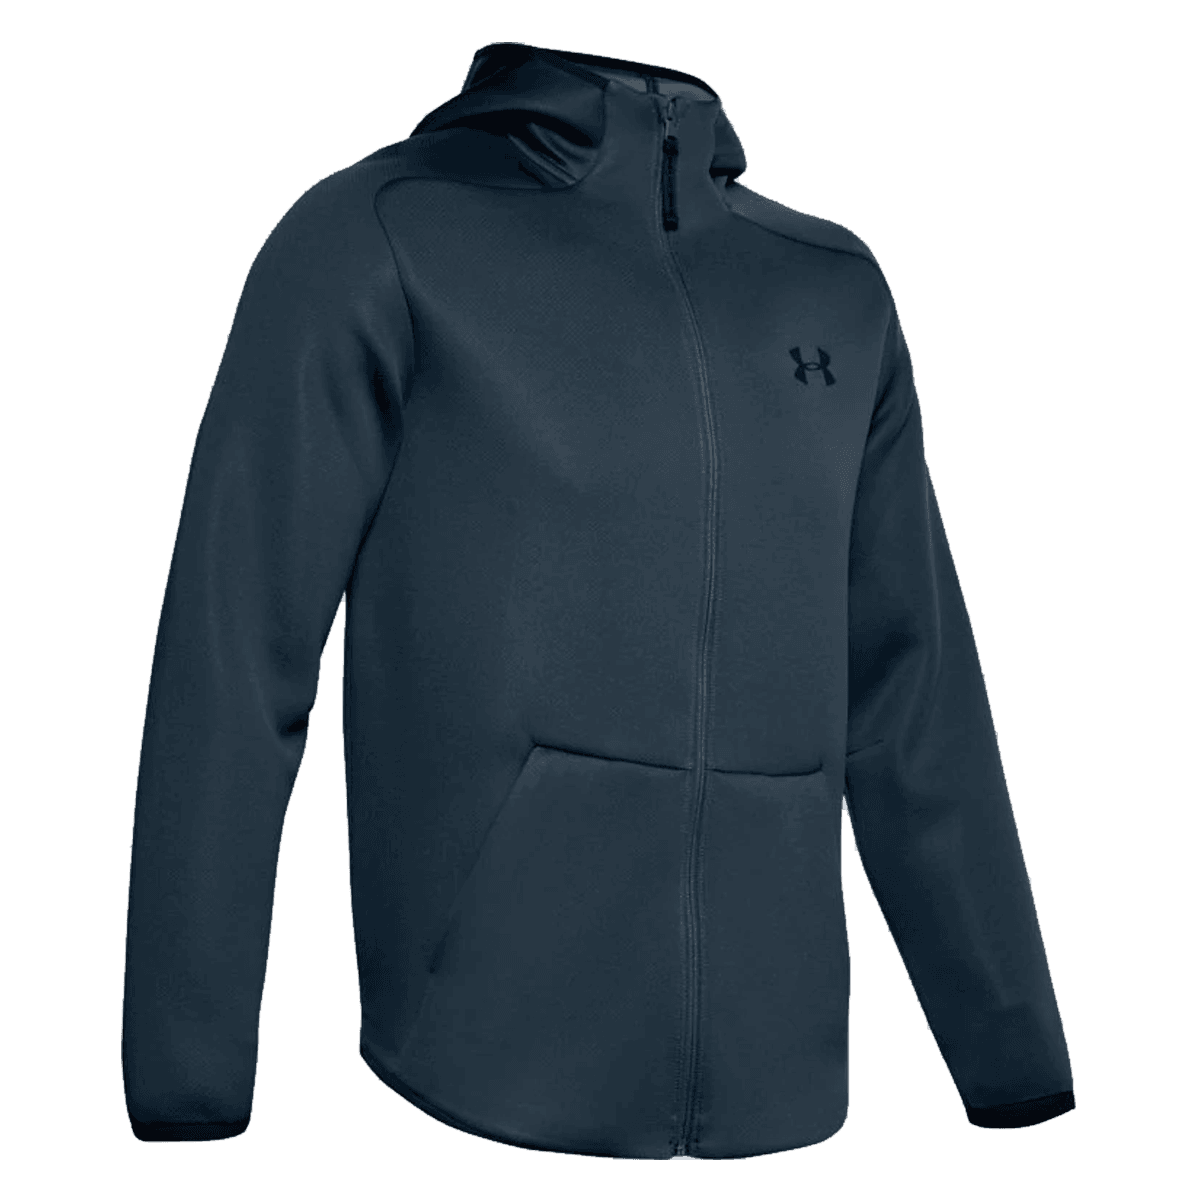 Under Armour Kapuzenjacke Move FZ Jacket dunkelblau/schwarz